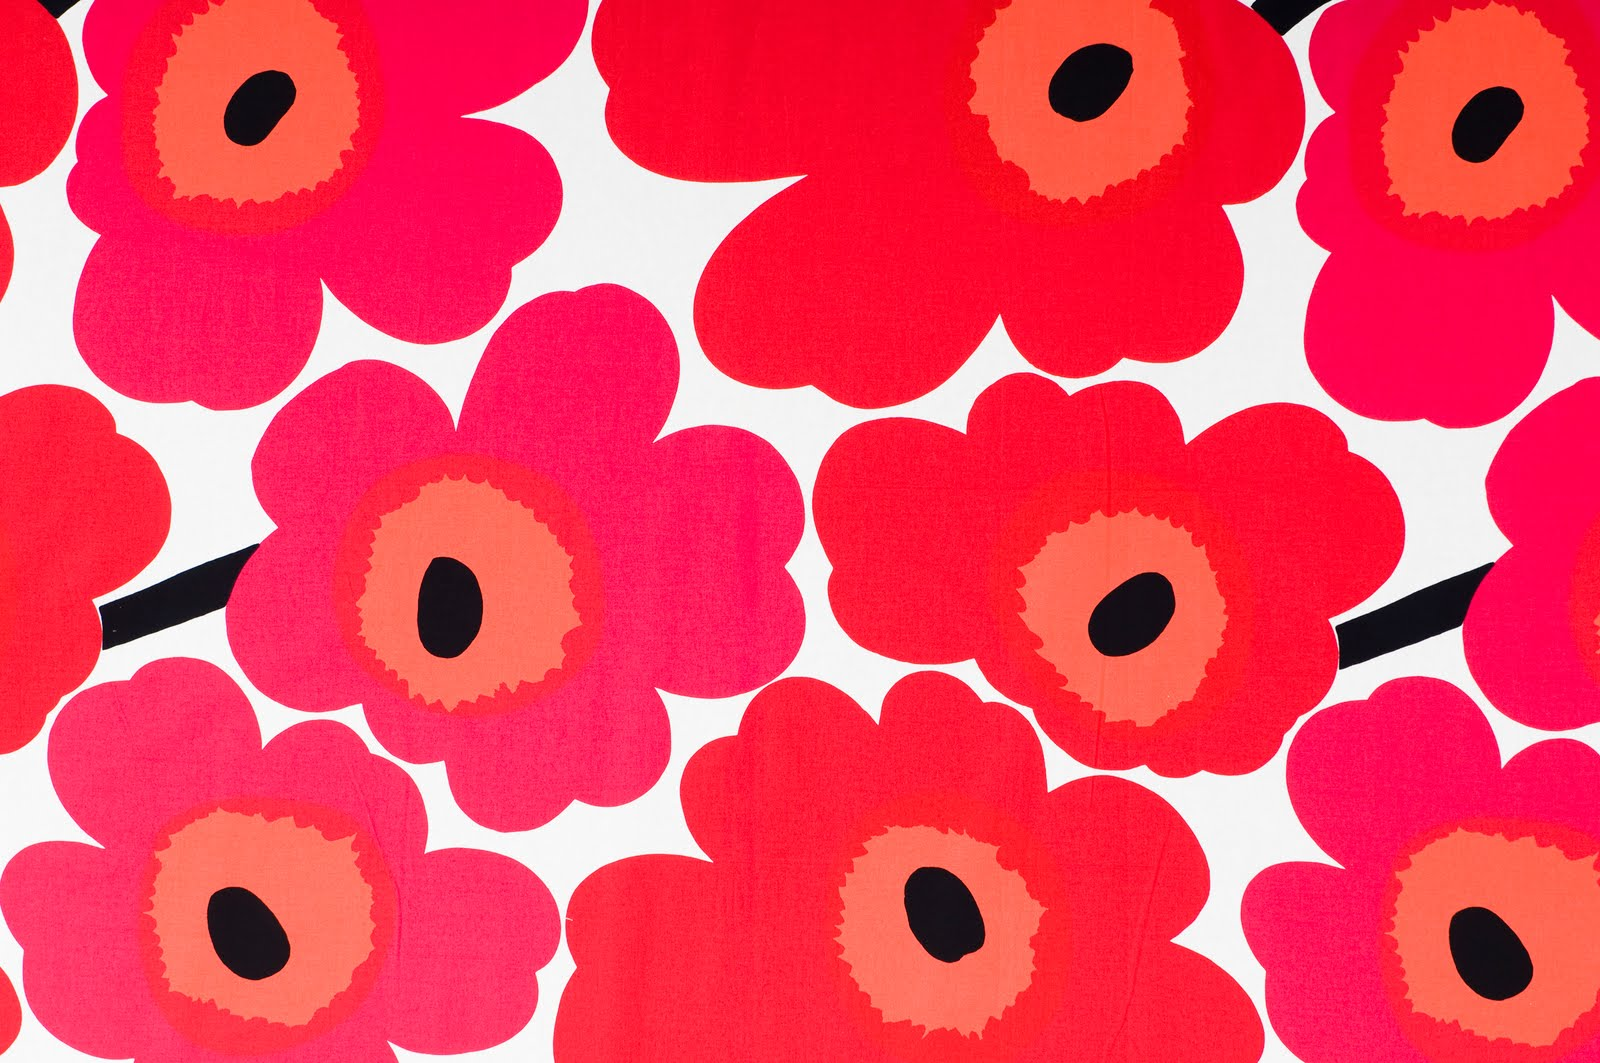 Free Download Marimekko Wallpapers 1600x1063 For Your